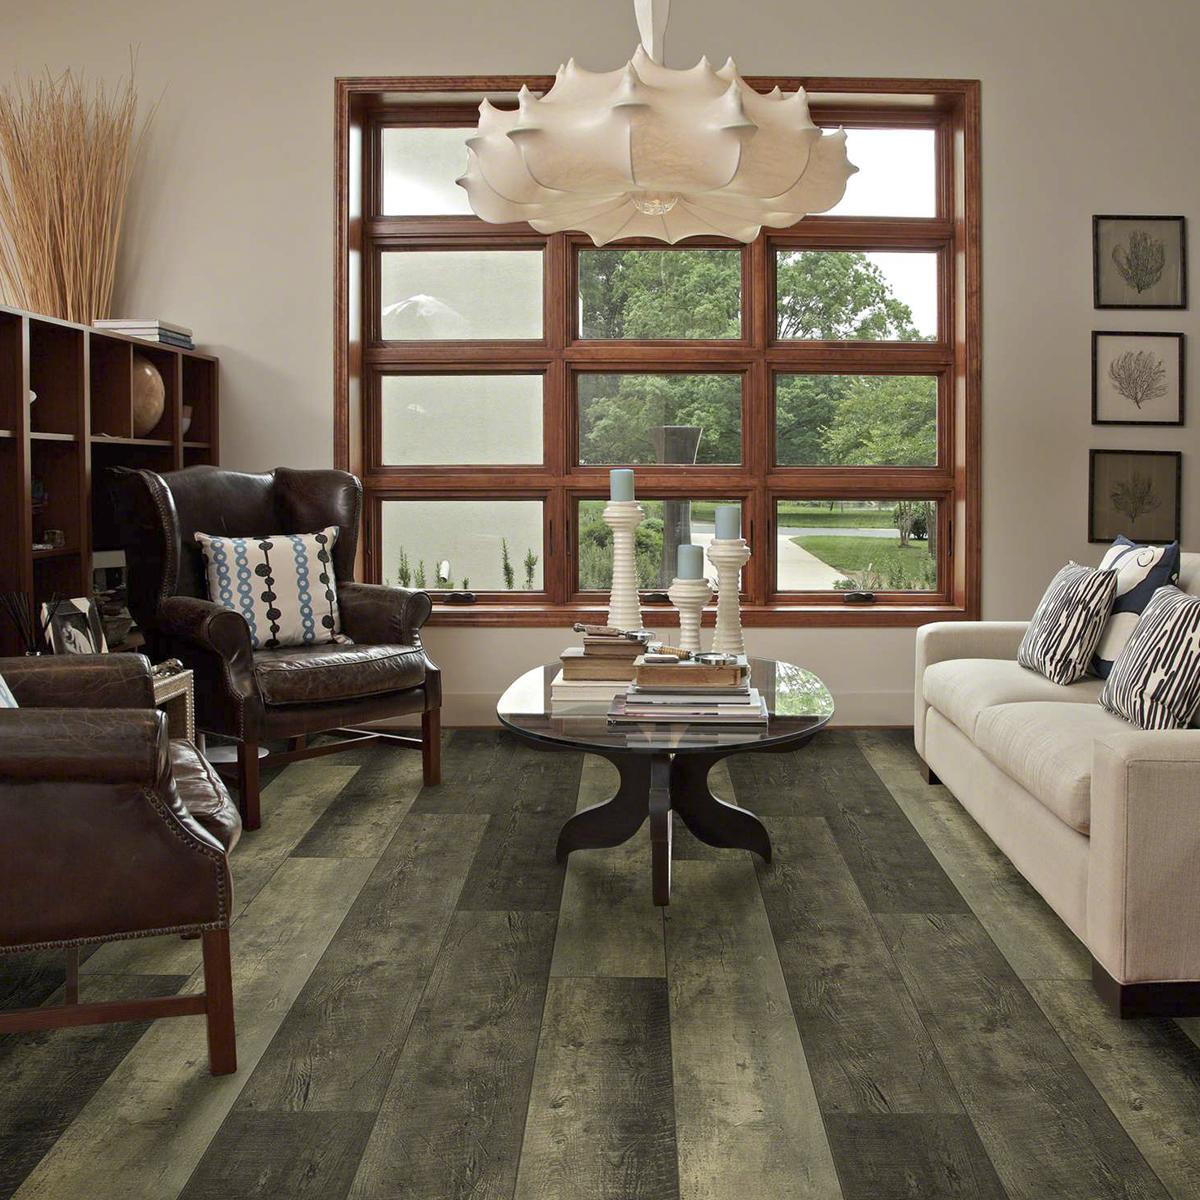 luxury vinyl hardwood flooring of shaw titan hd plus antique barnboard 9 x 72 luxury vinyl plank within titan hd plus antique barnboard 9 x 72 luxury vinyl plank